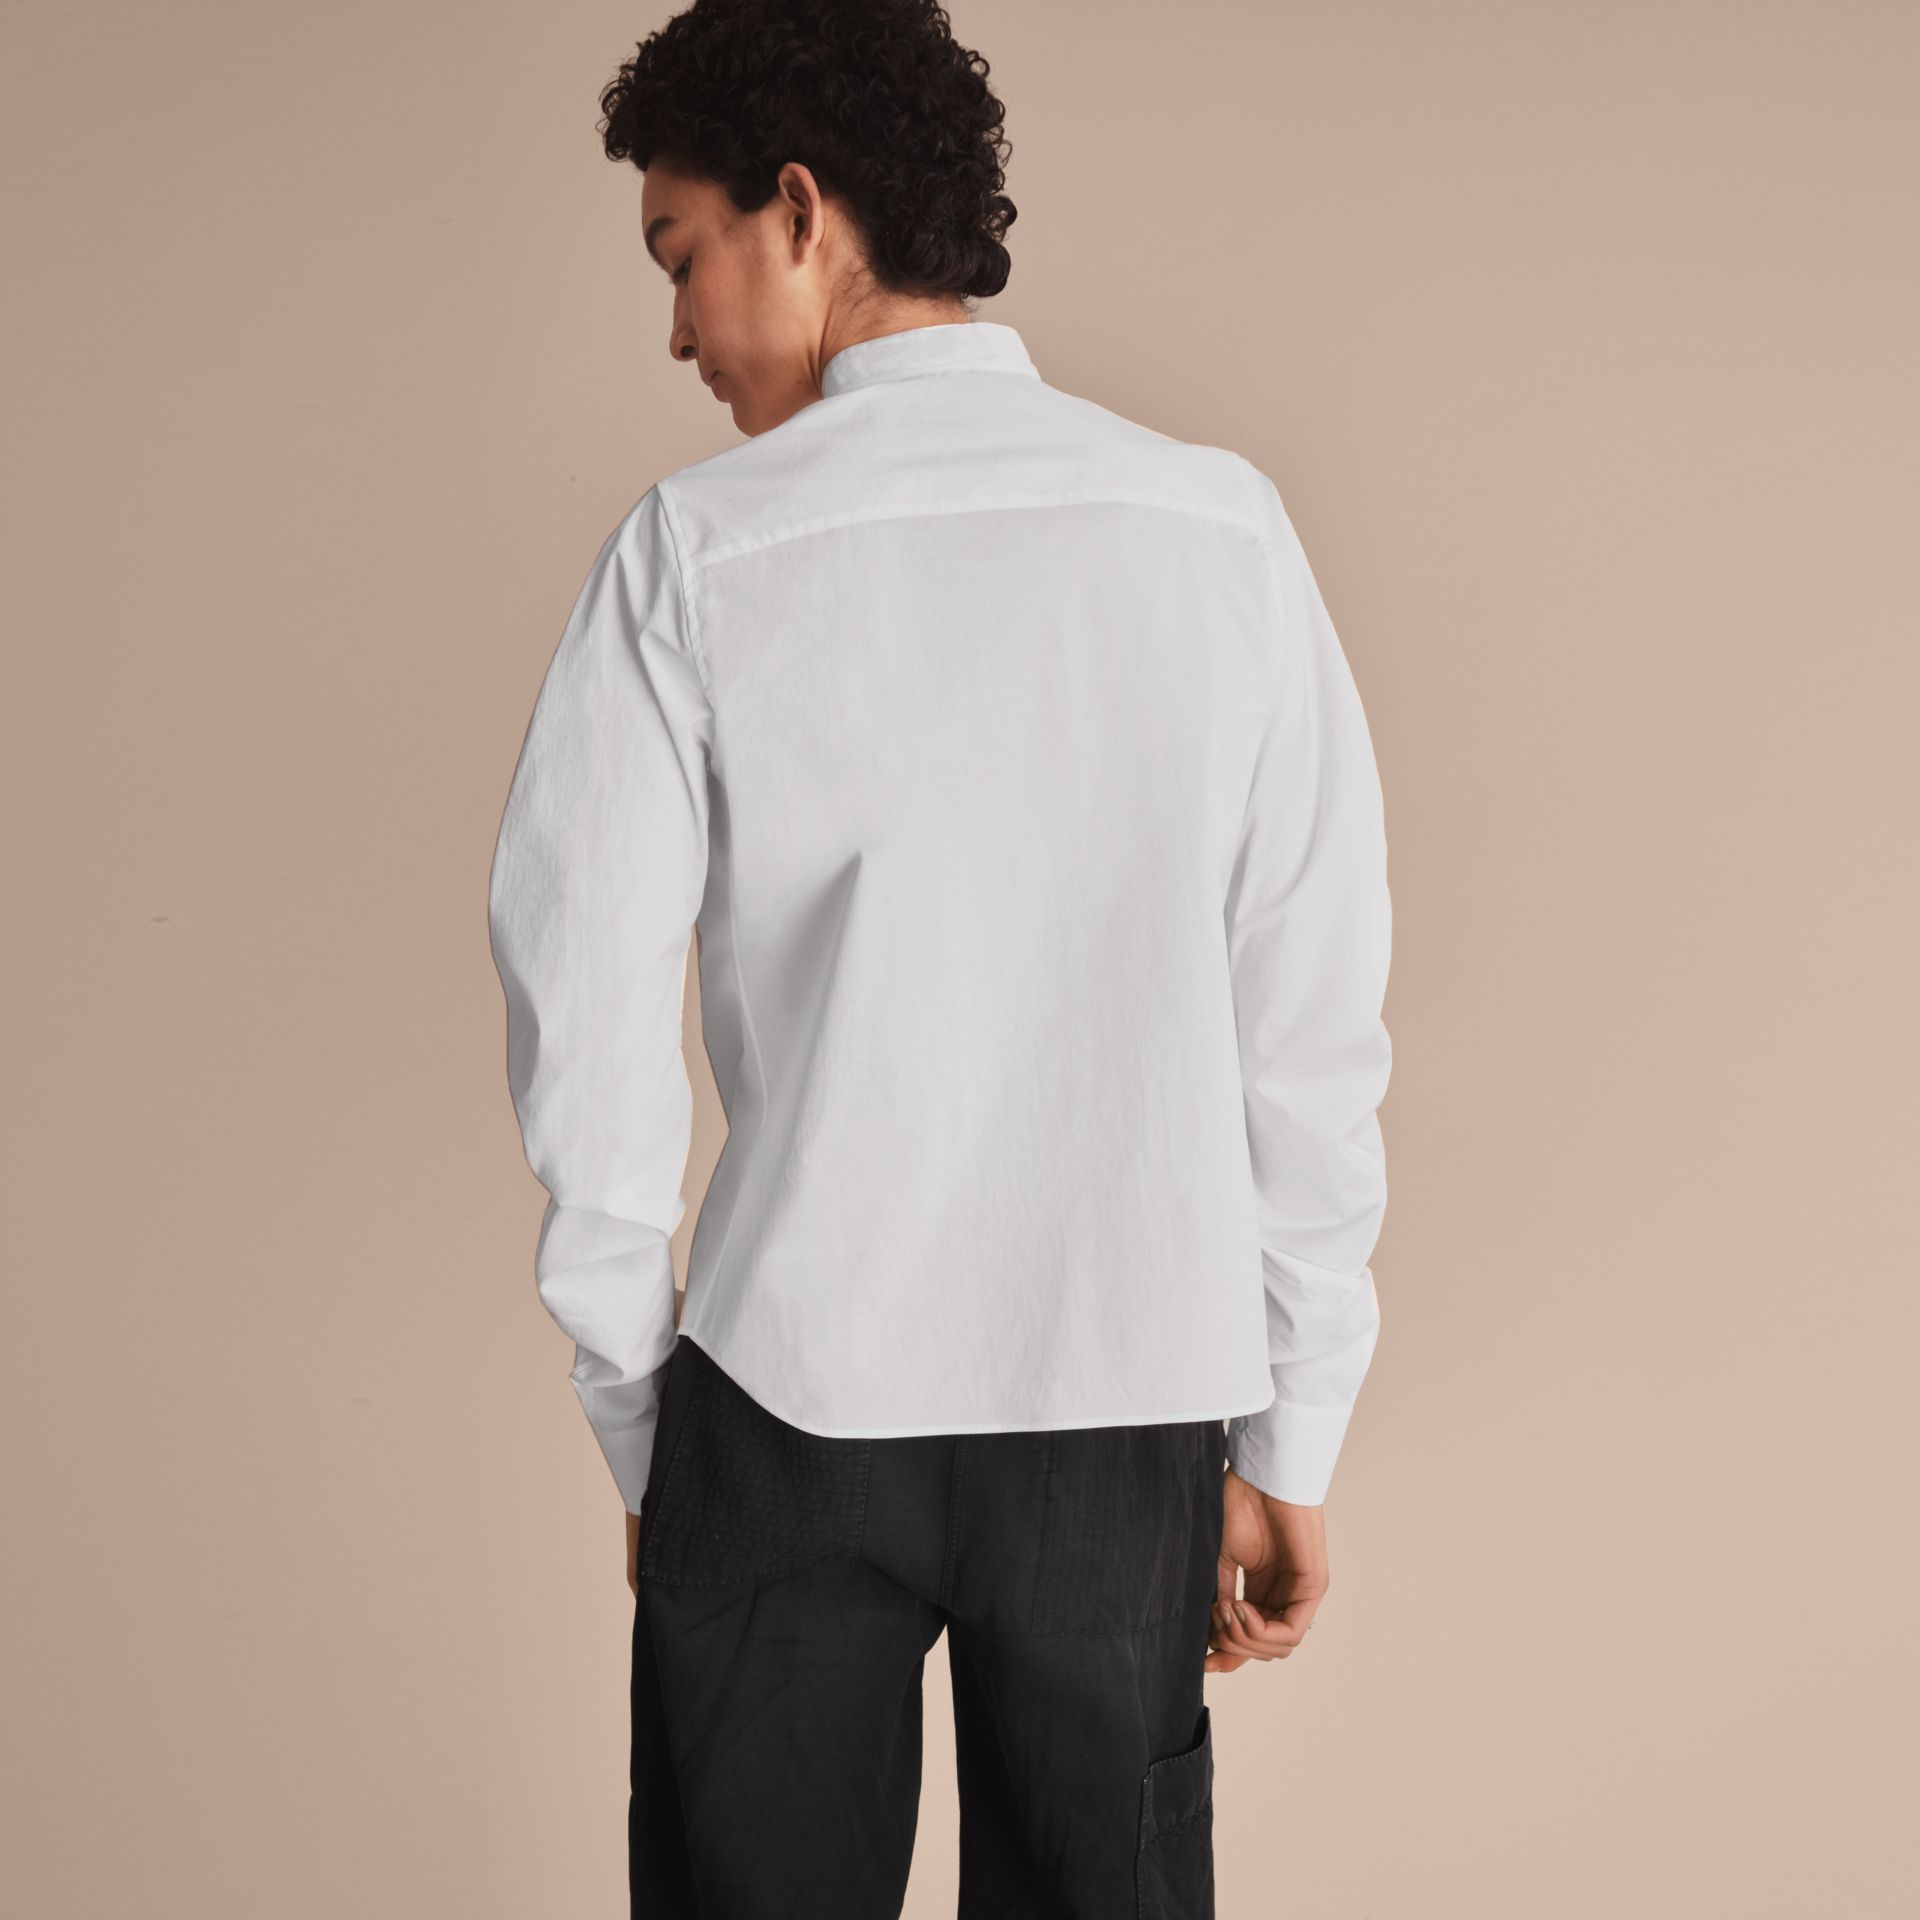 Pintuck Bib Stretch Cotton Shirt in White - Women | Burberry - gallery image 3